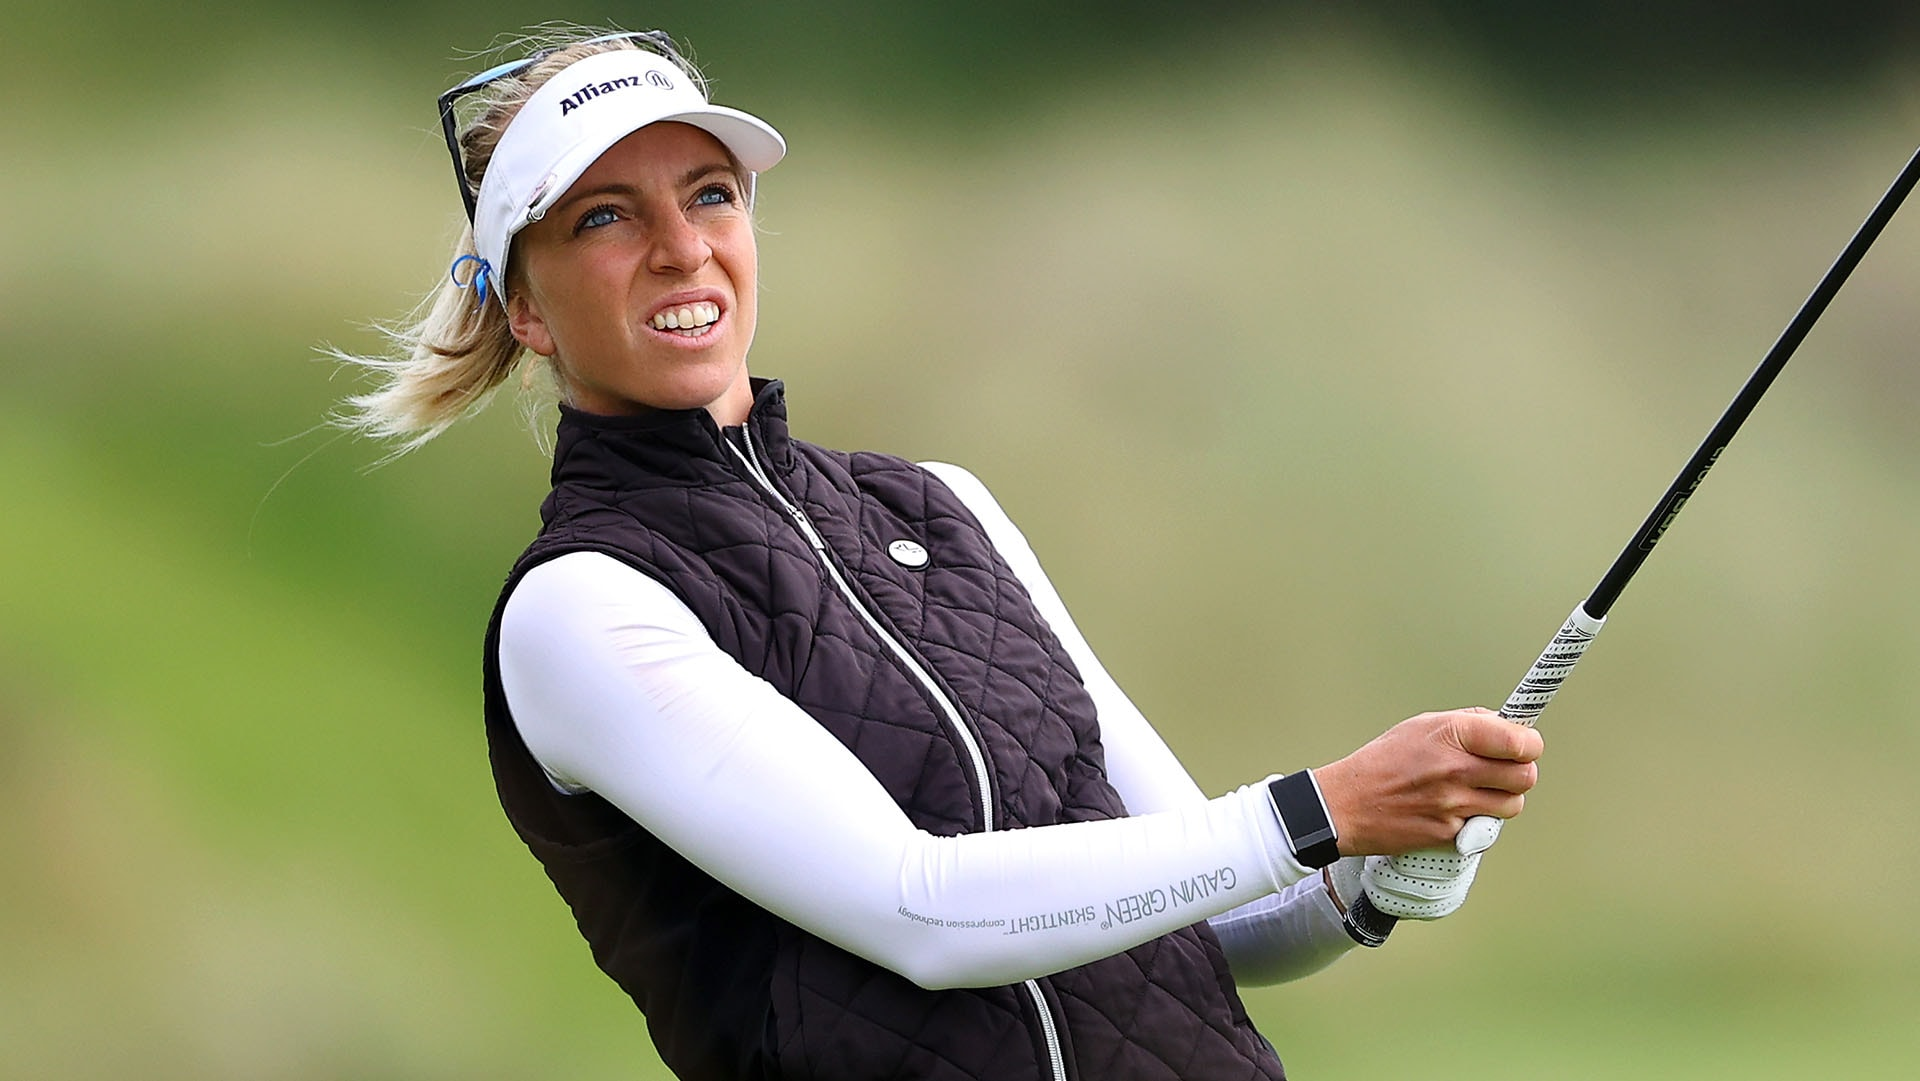 Underdog Sophia Popov leads by 3, looks to make German history at AIG  Women's Open | Golf Channel